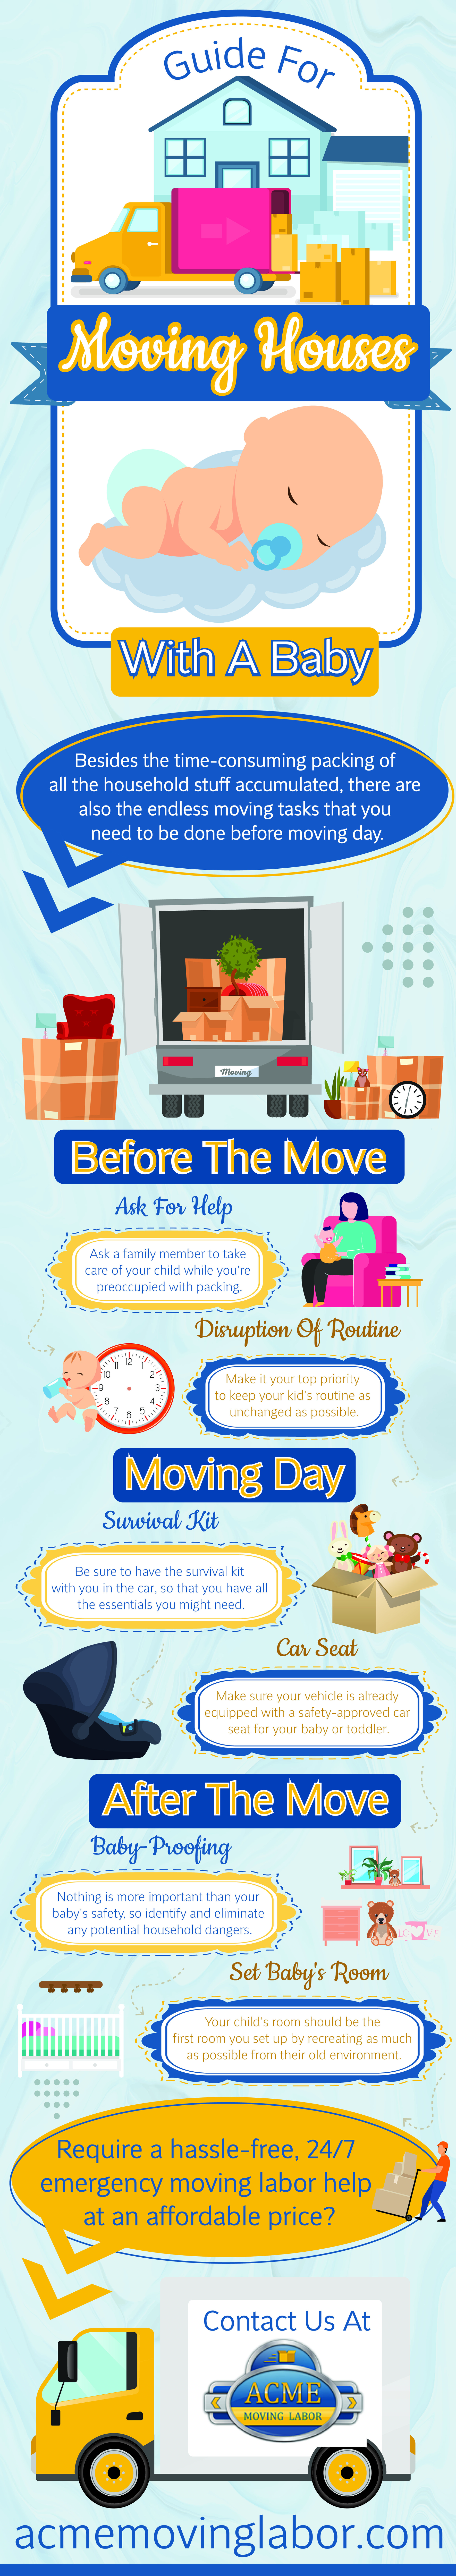 moving house guide with a baby